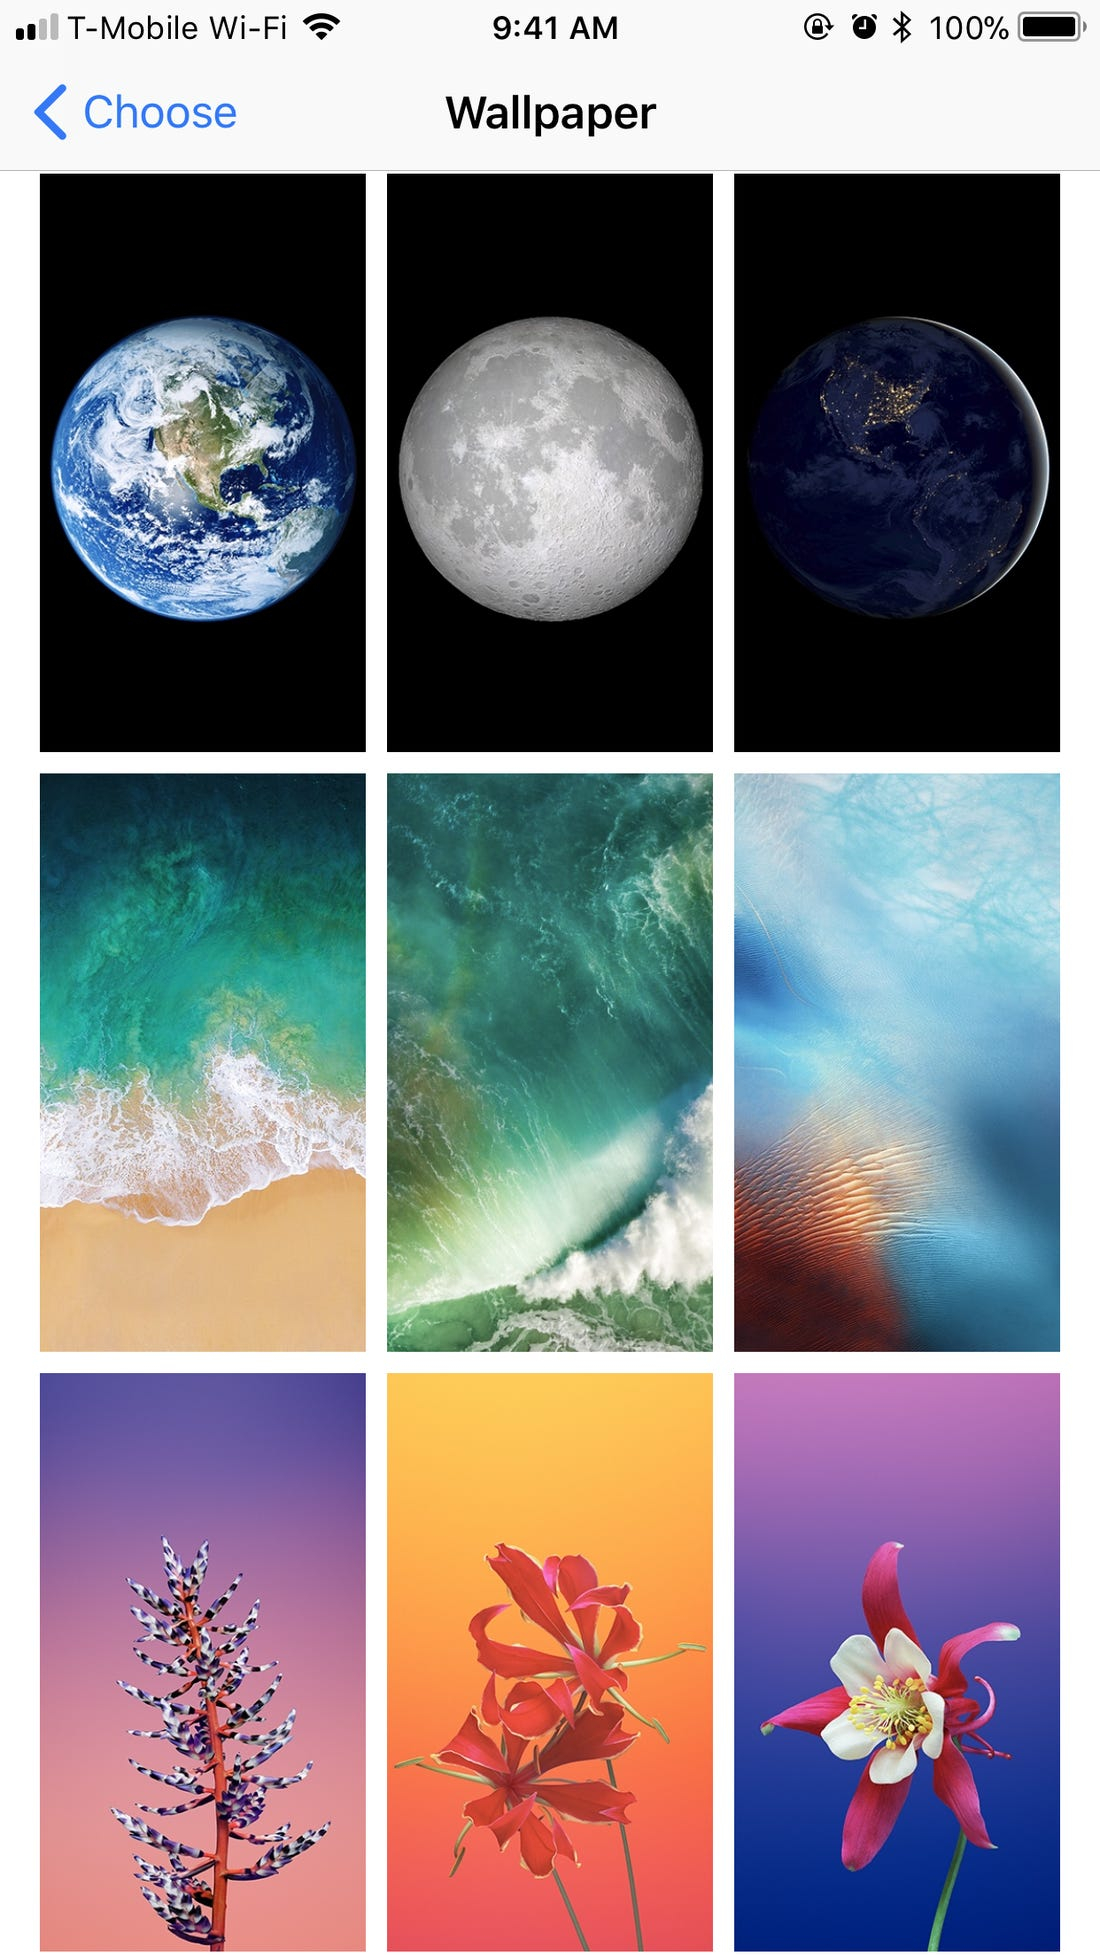 apple ios 11 wallpapers abysmal opinion 2017 9